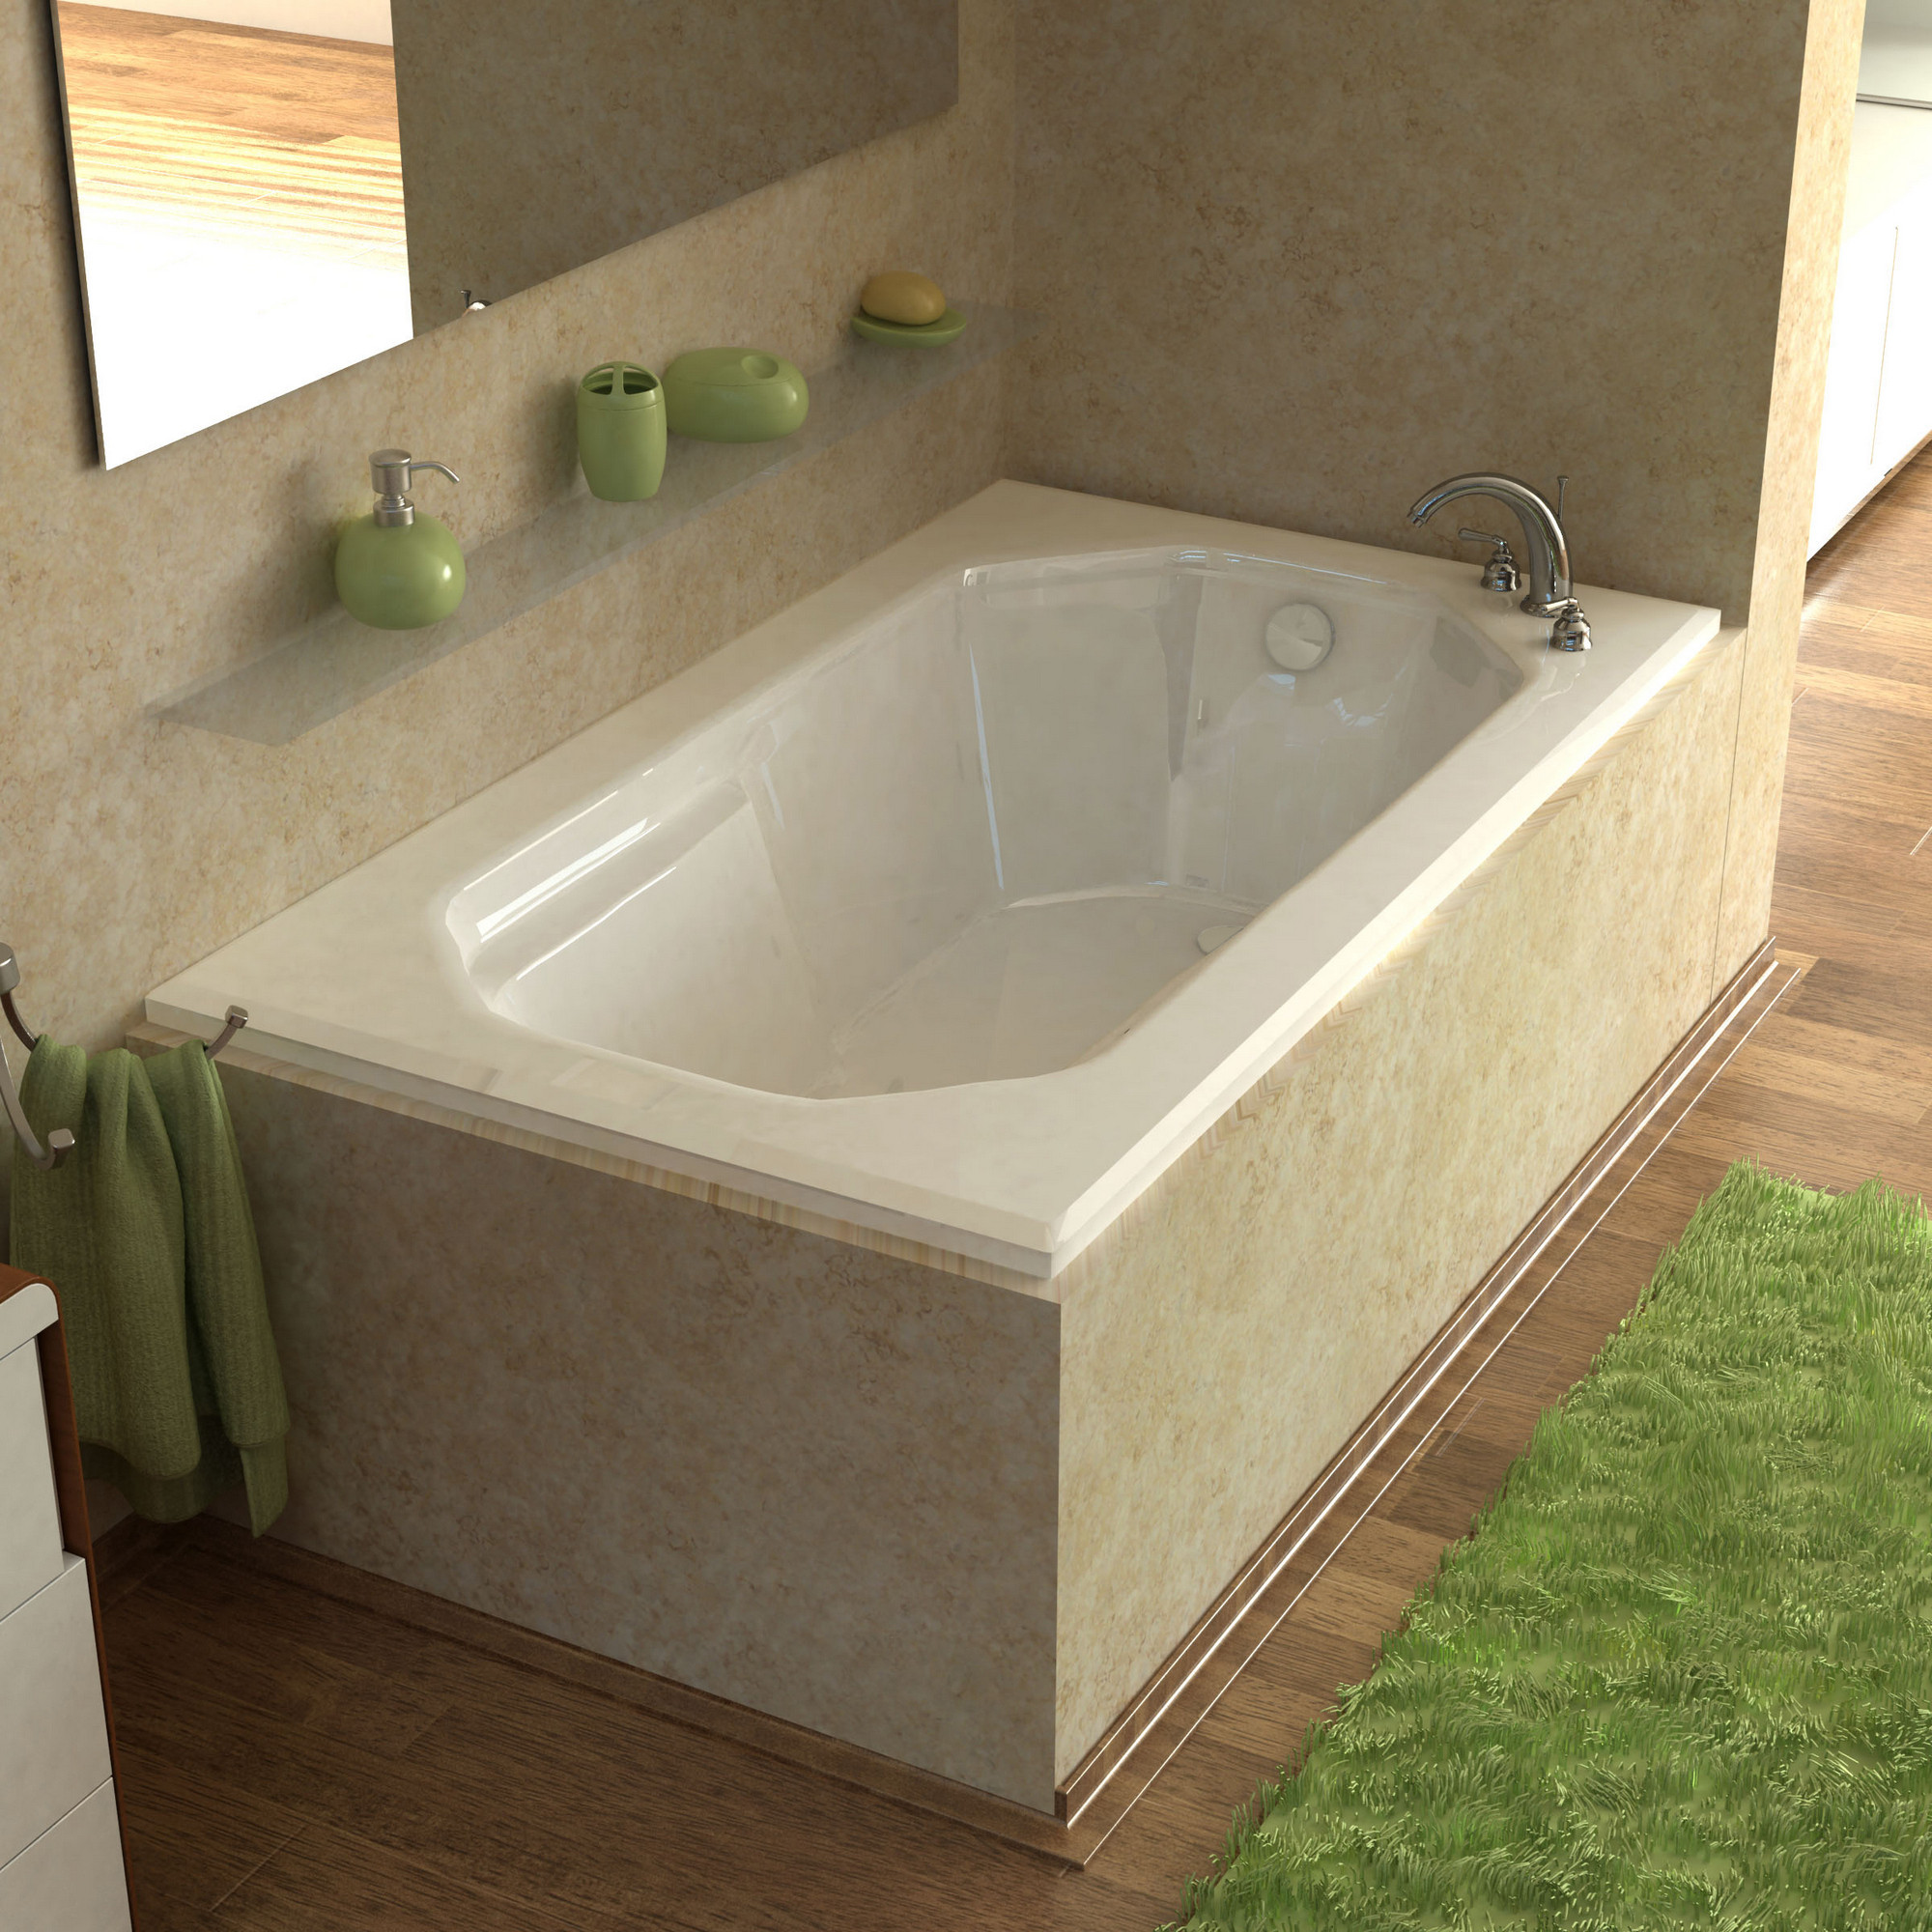 MediTub 3660M Atlantis Mirage 36 x 60 Rectangular Drop In Soaking Bathtub